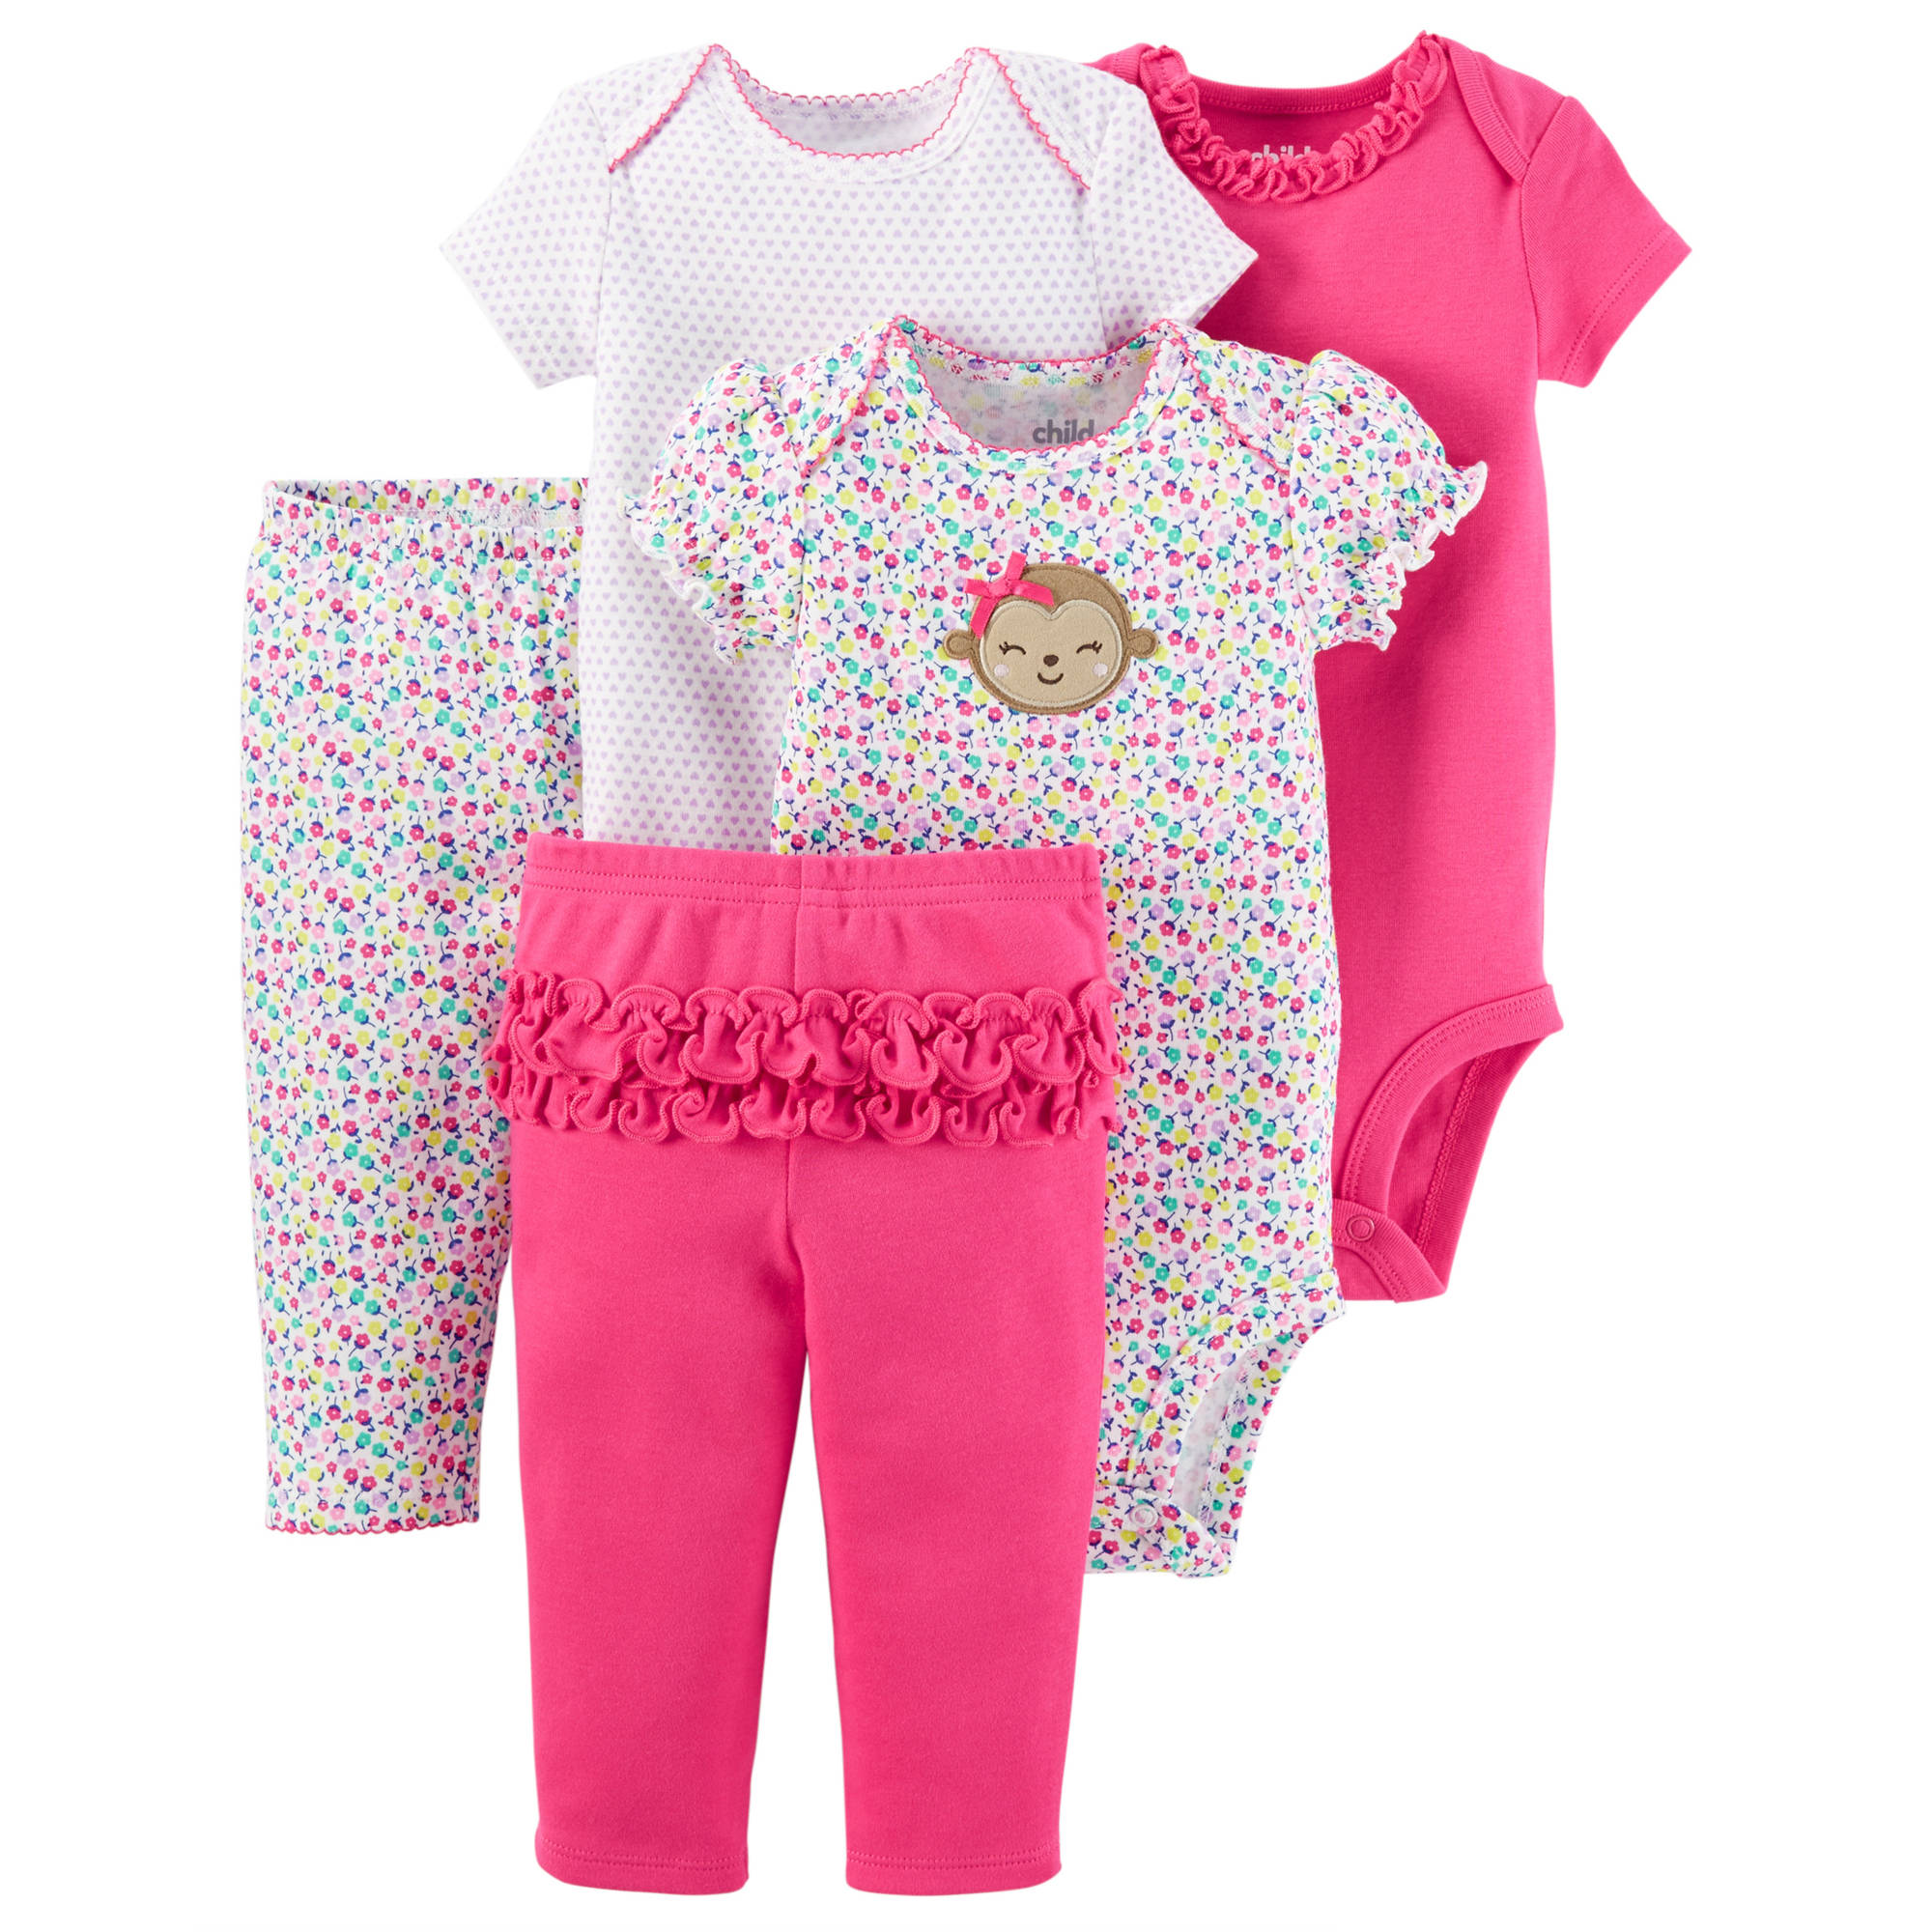 Child Of Mine by Carter's Newborn Baby Girl Bodysuits and Pants, 5-Piece Set